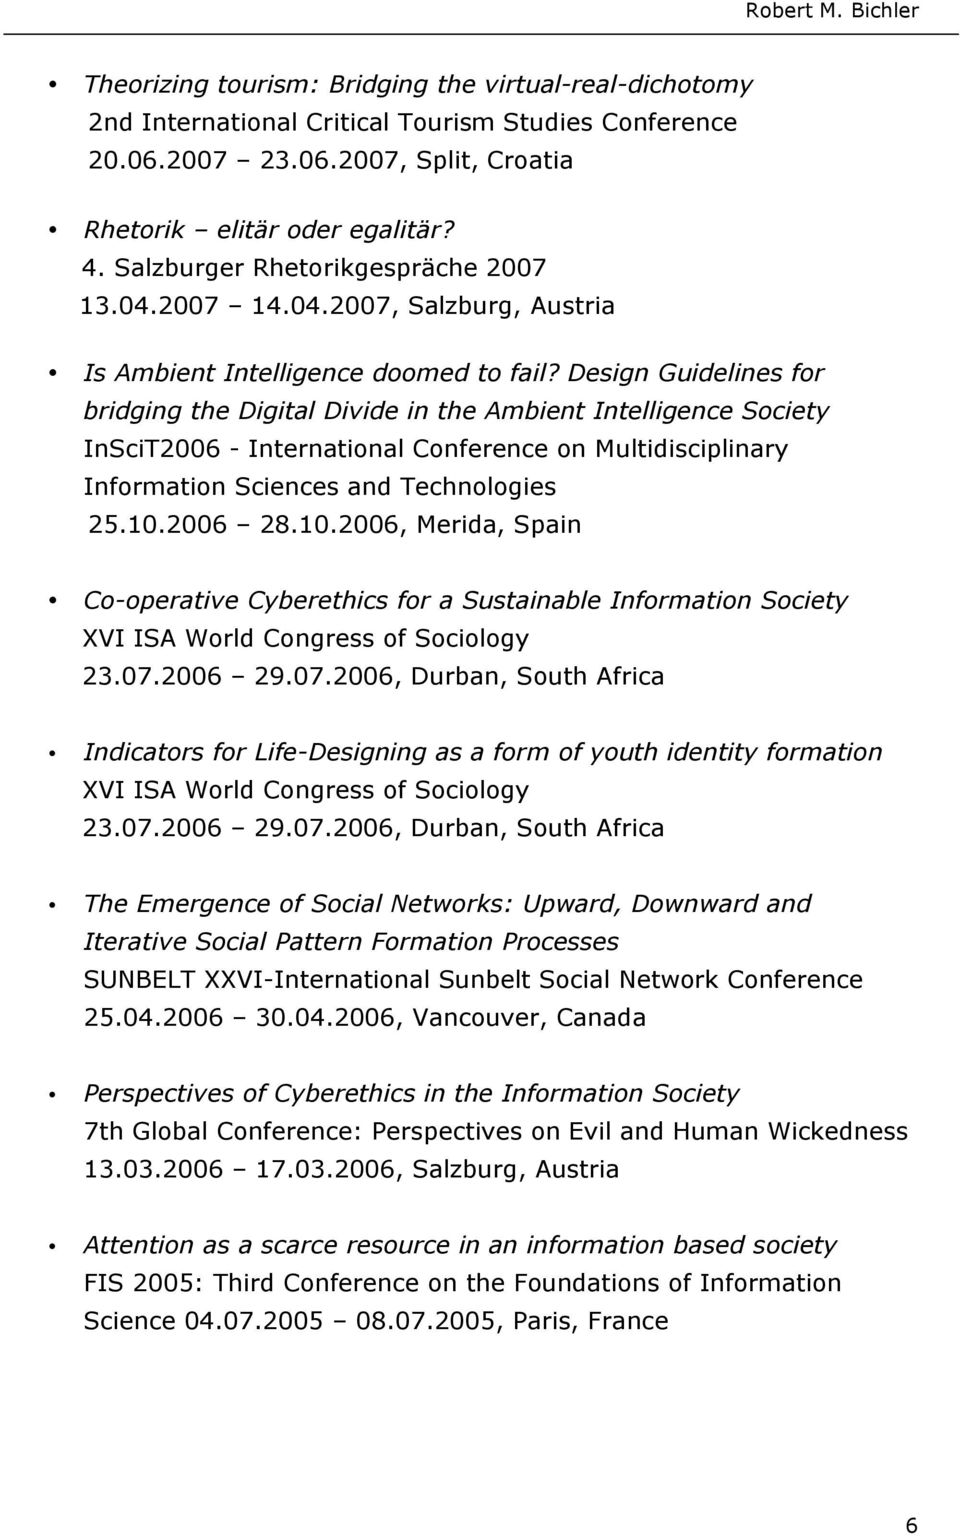 Design Guidelines for bridging the Digital Divide in the Ambient Intelligence Society InSciT2006 - International Conference on Multidisciplinary Information Sciences and Technologies 25.10.